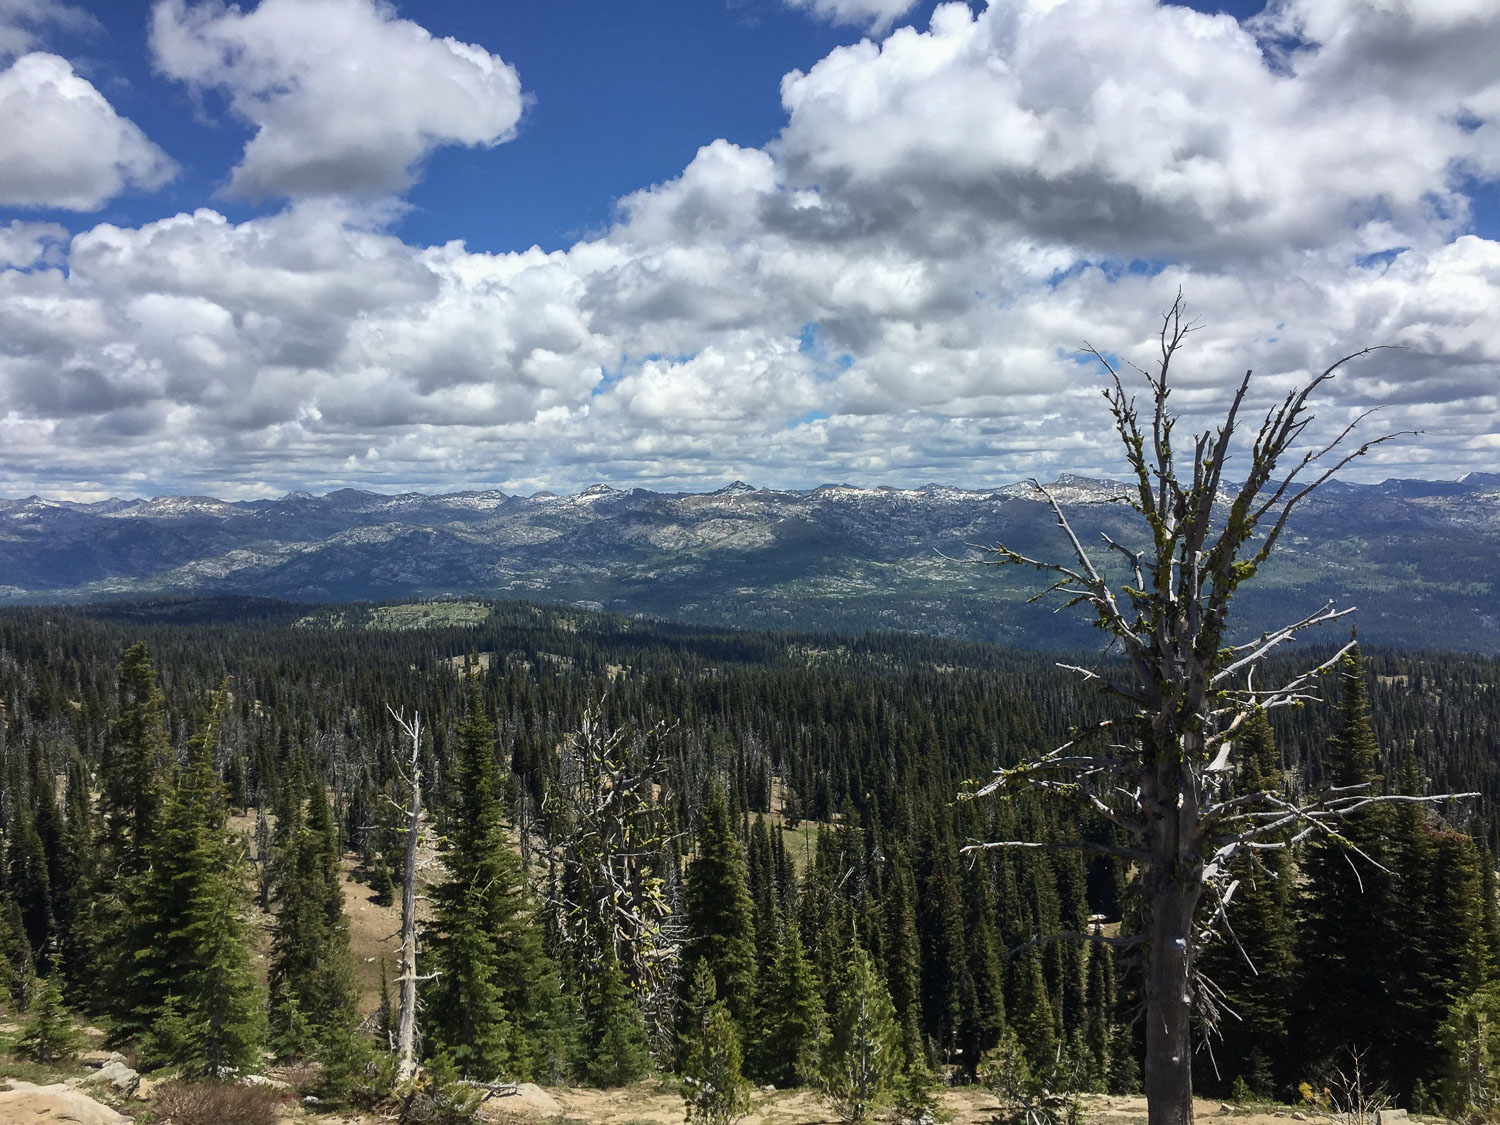 View from trail in Payette National Forest, Idaho